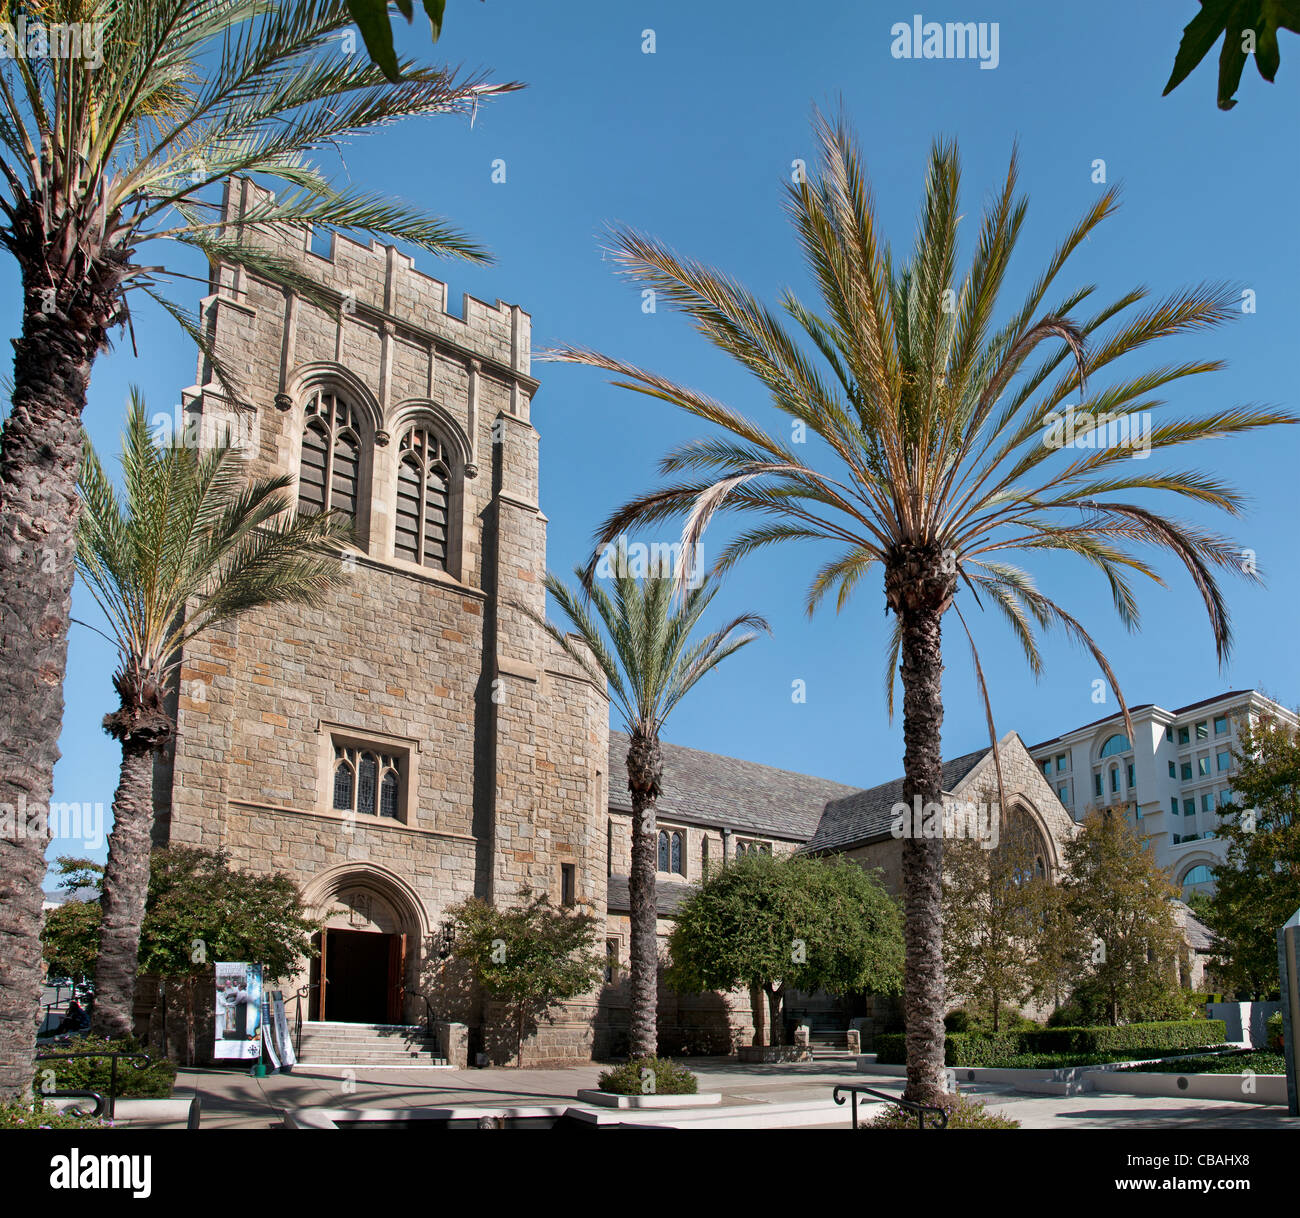 All Saints Church Pasadena California United States of America American USA Town City Los Angeles - Stock Image